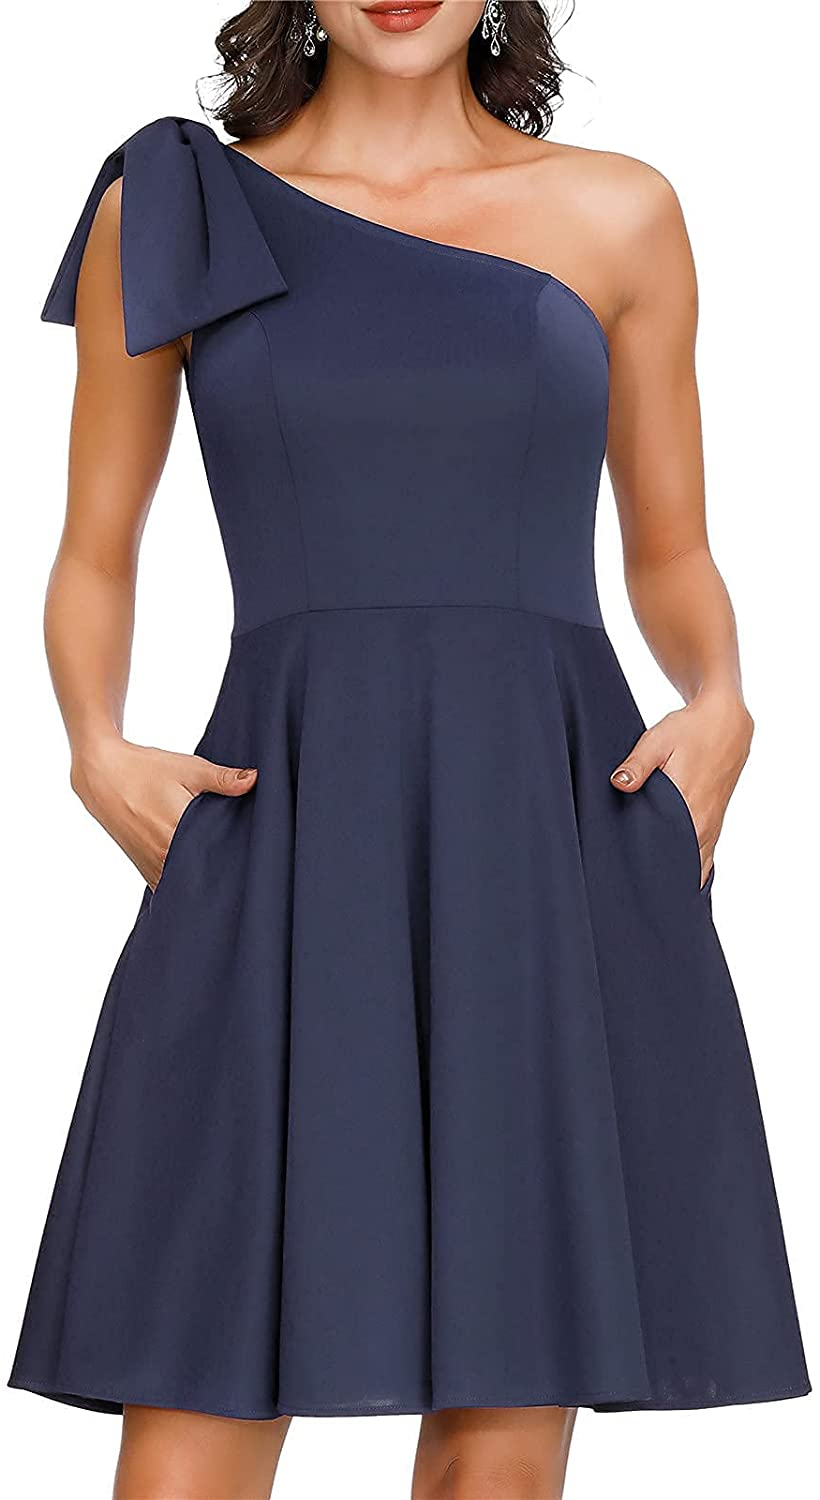 JASAMBAC Women's Bow One Shoulder Dress with Pockets A-line Cocktail Party Dress